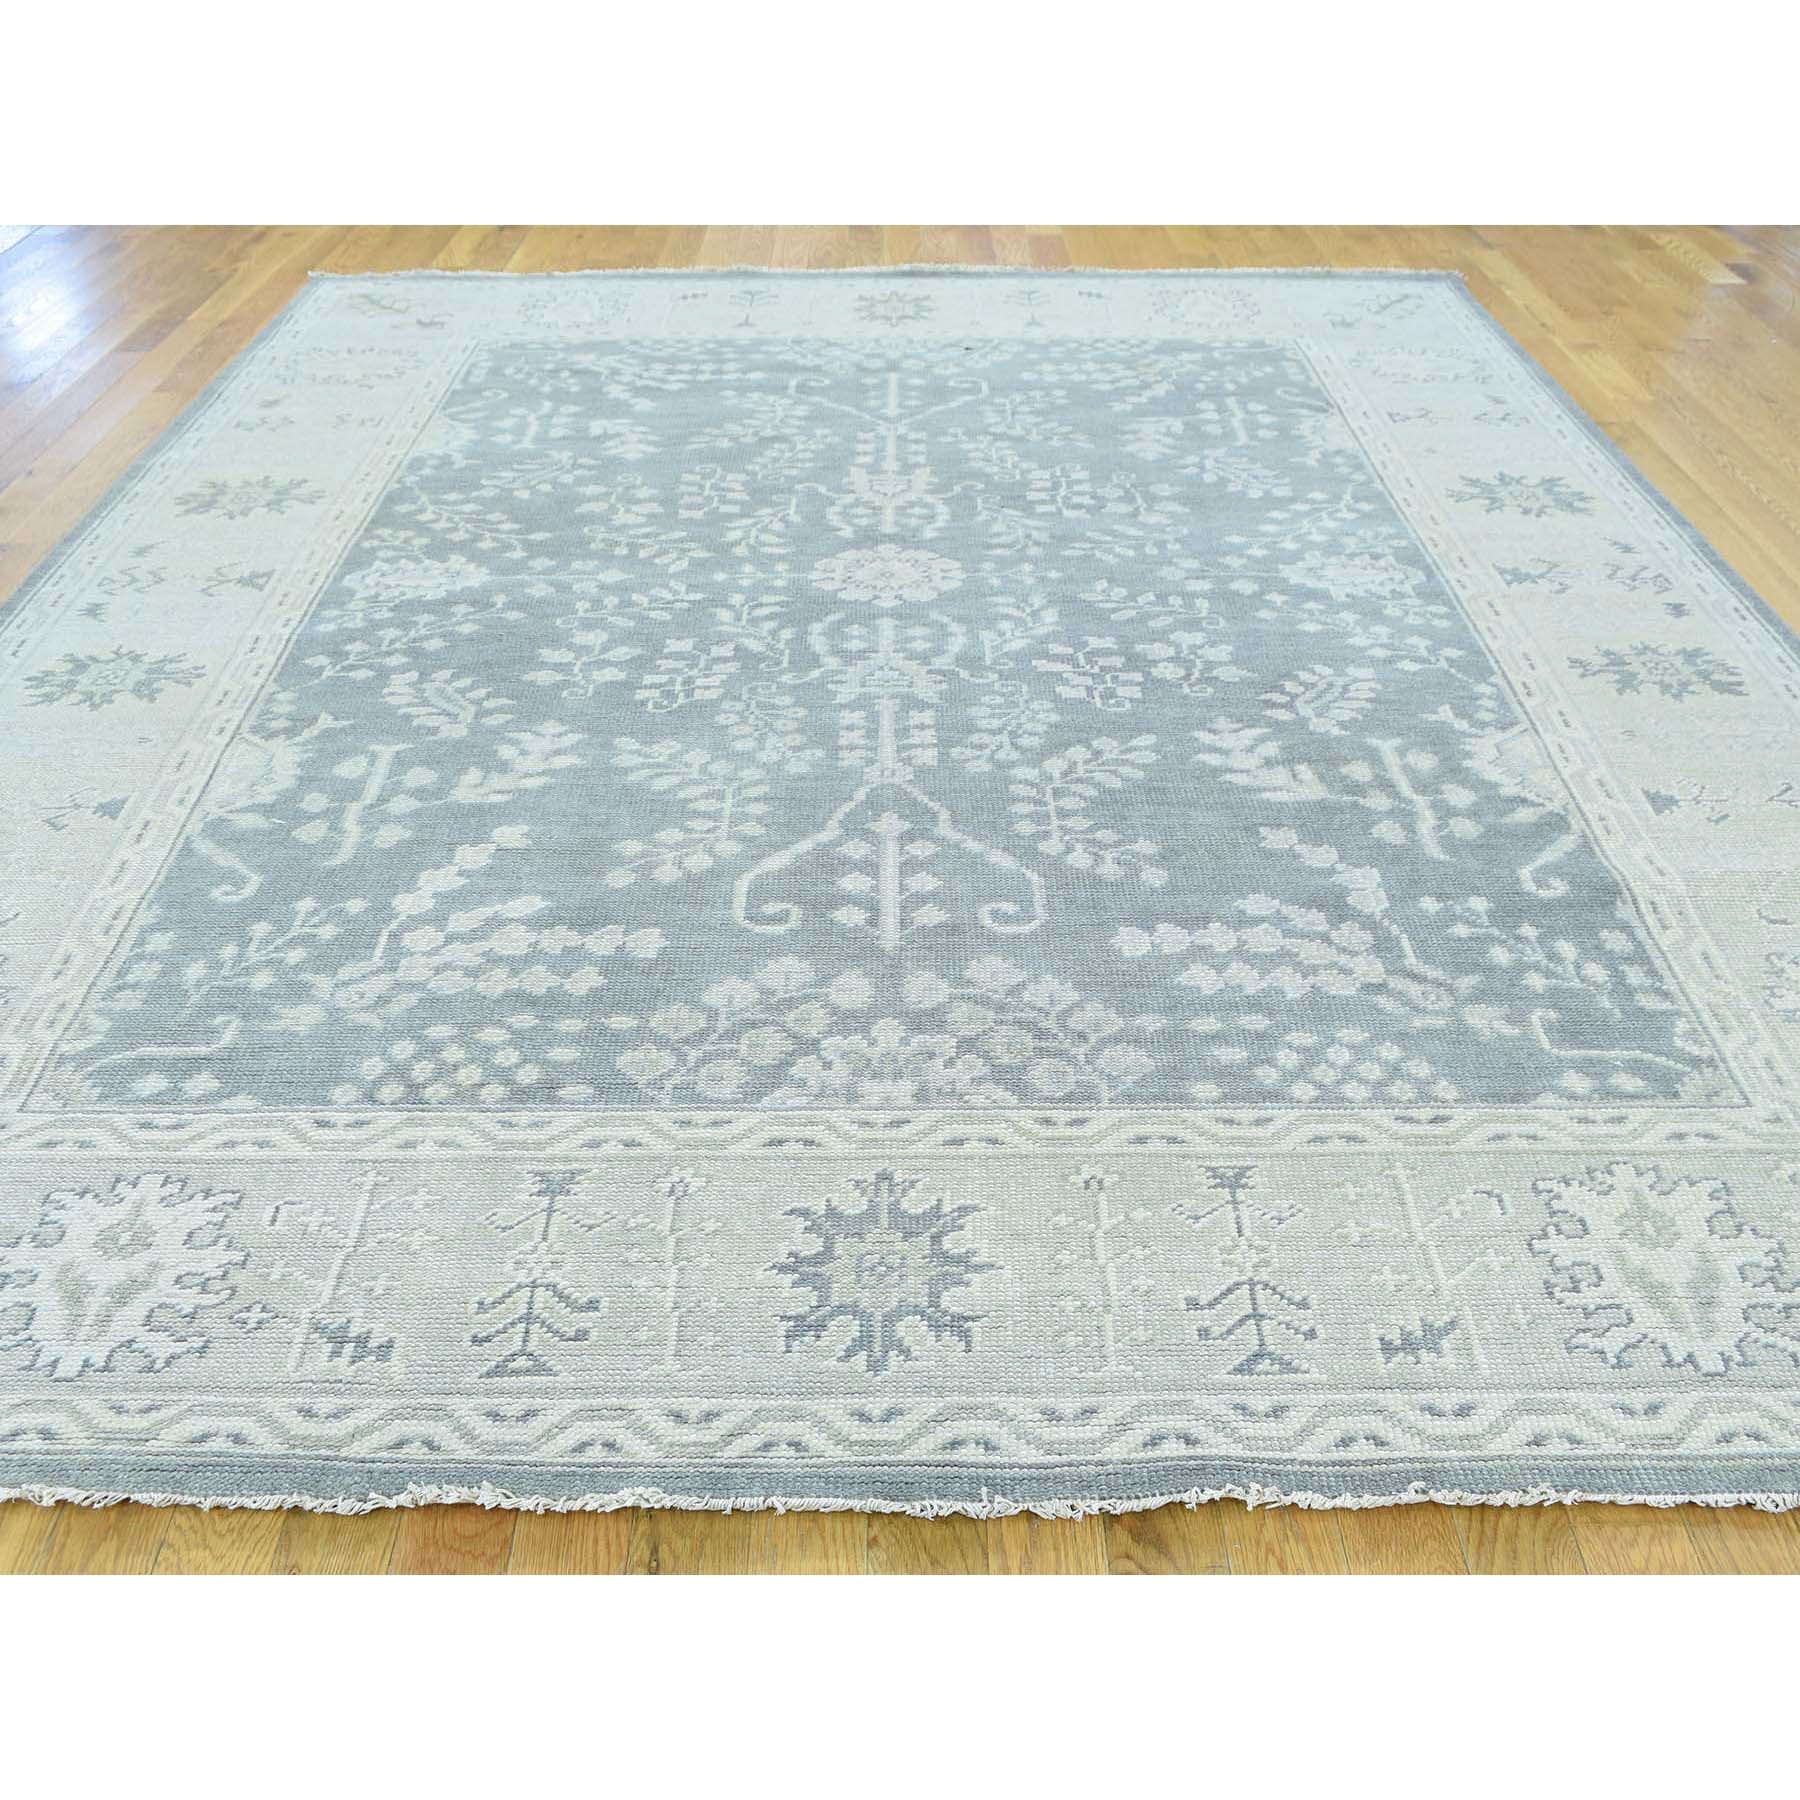 9'x12' Hand Made Turkish Knot Oushak 100 Percent Wool Oriental Rug